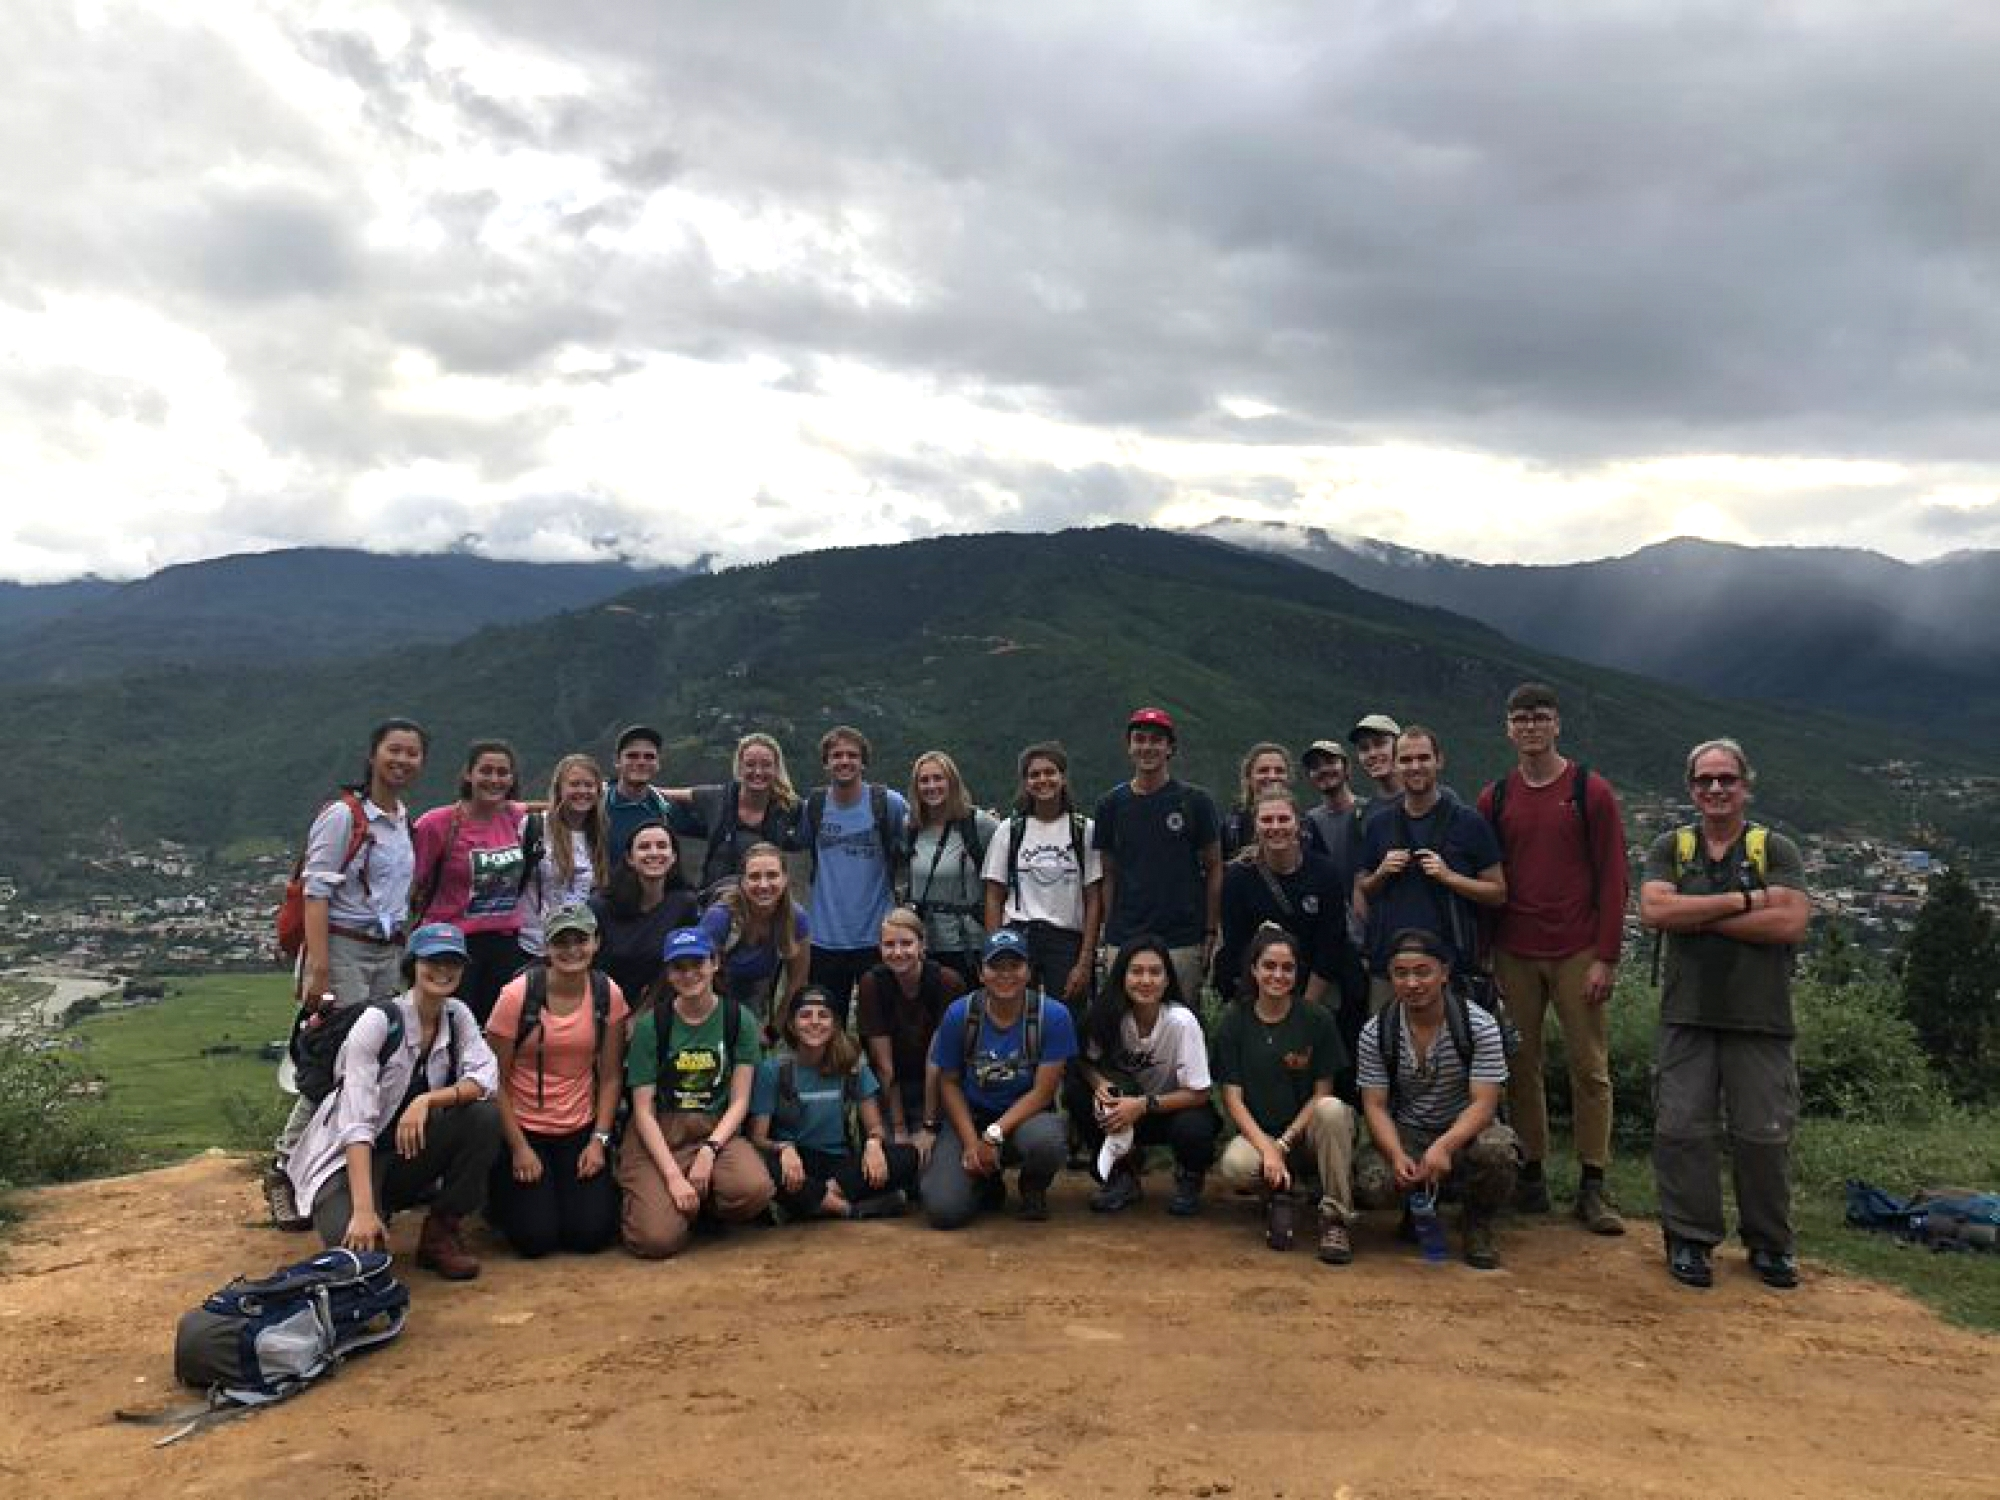 The School for Field Studies (SFS) 2019 Fall Semester Program Begins